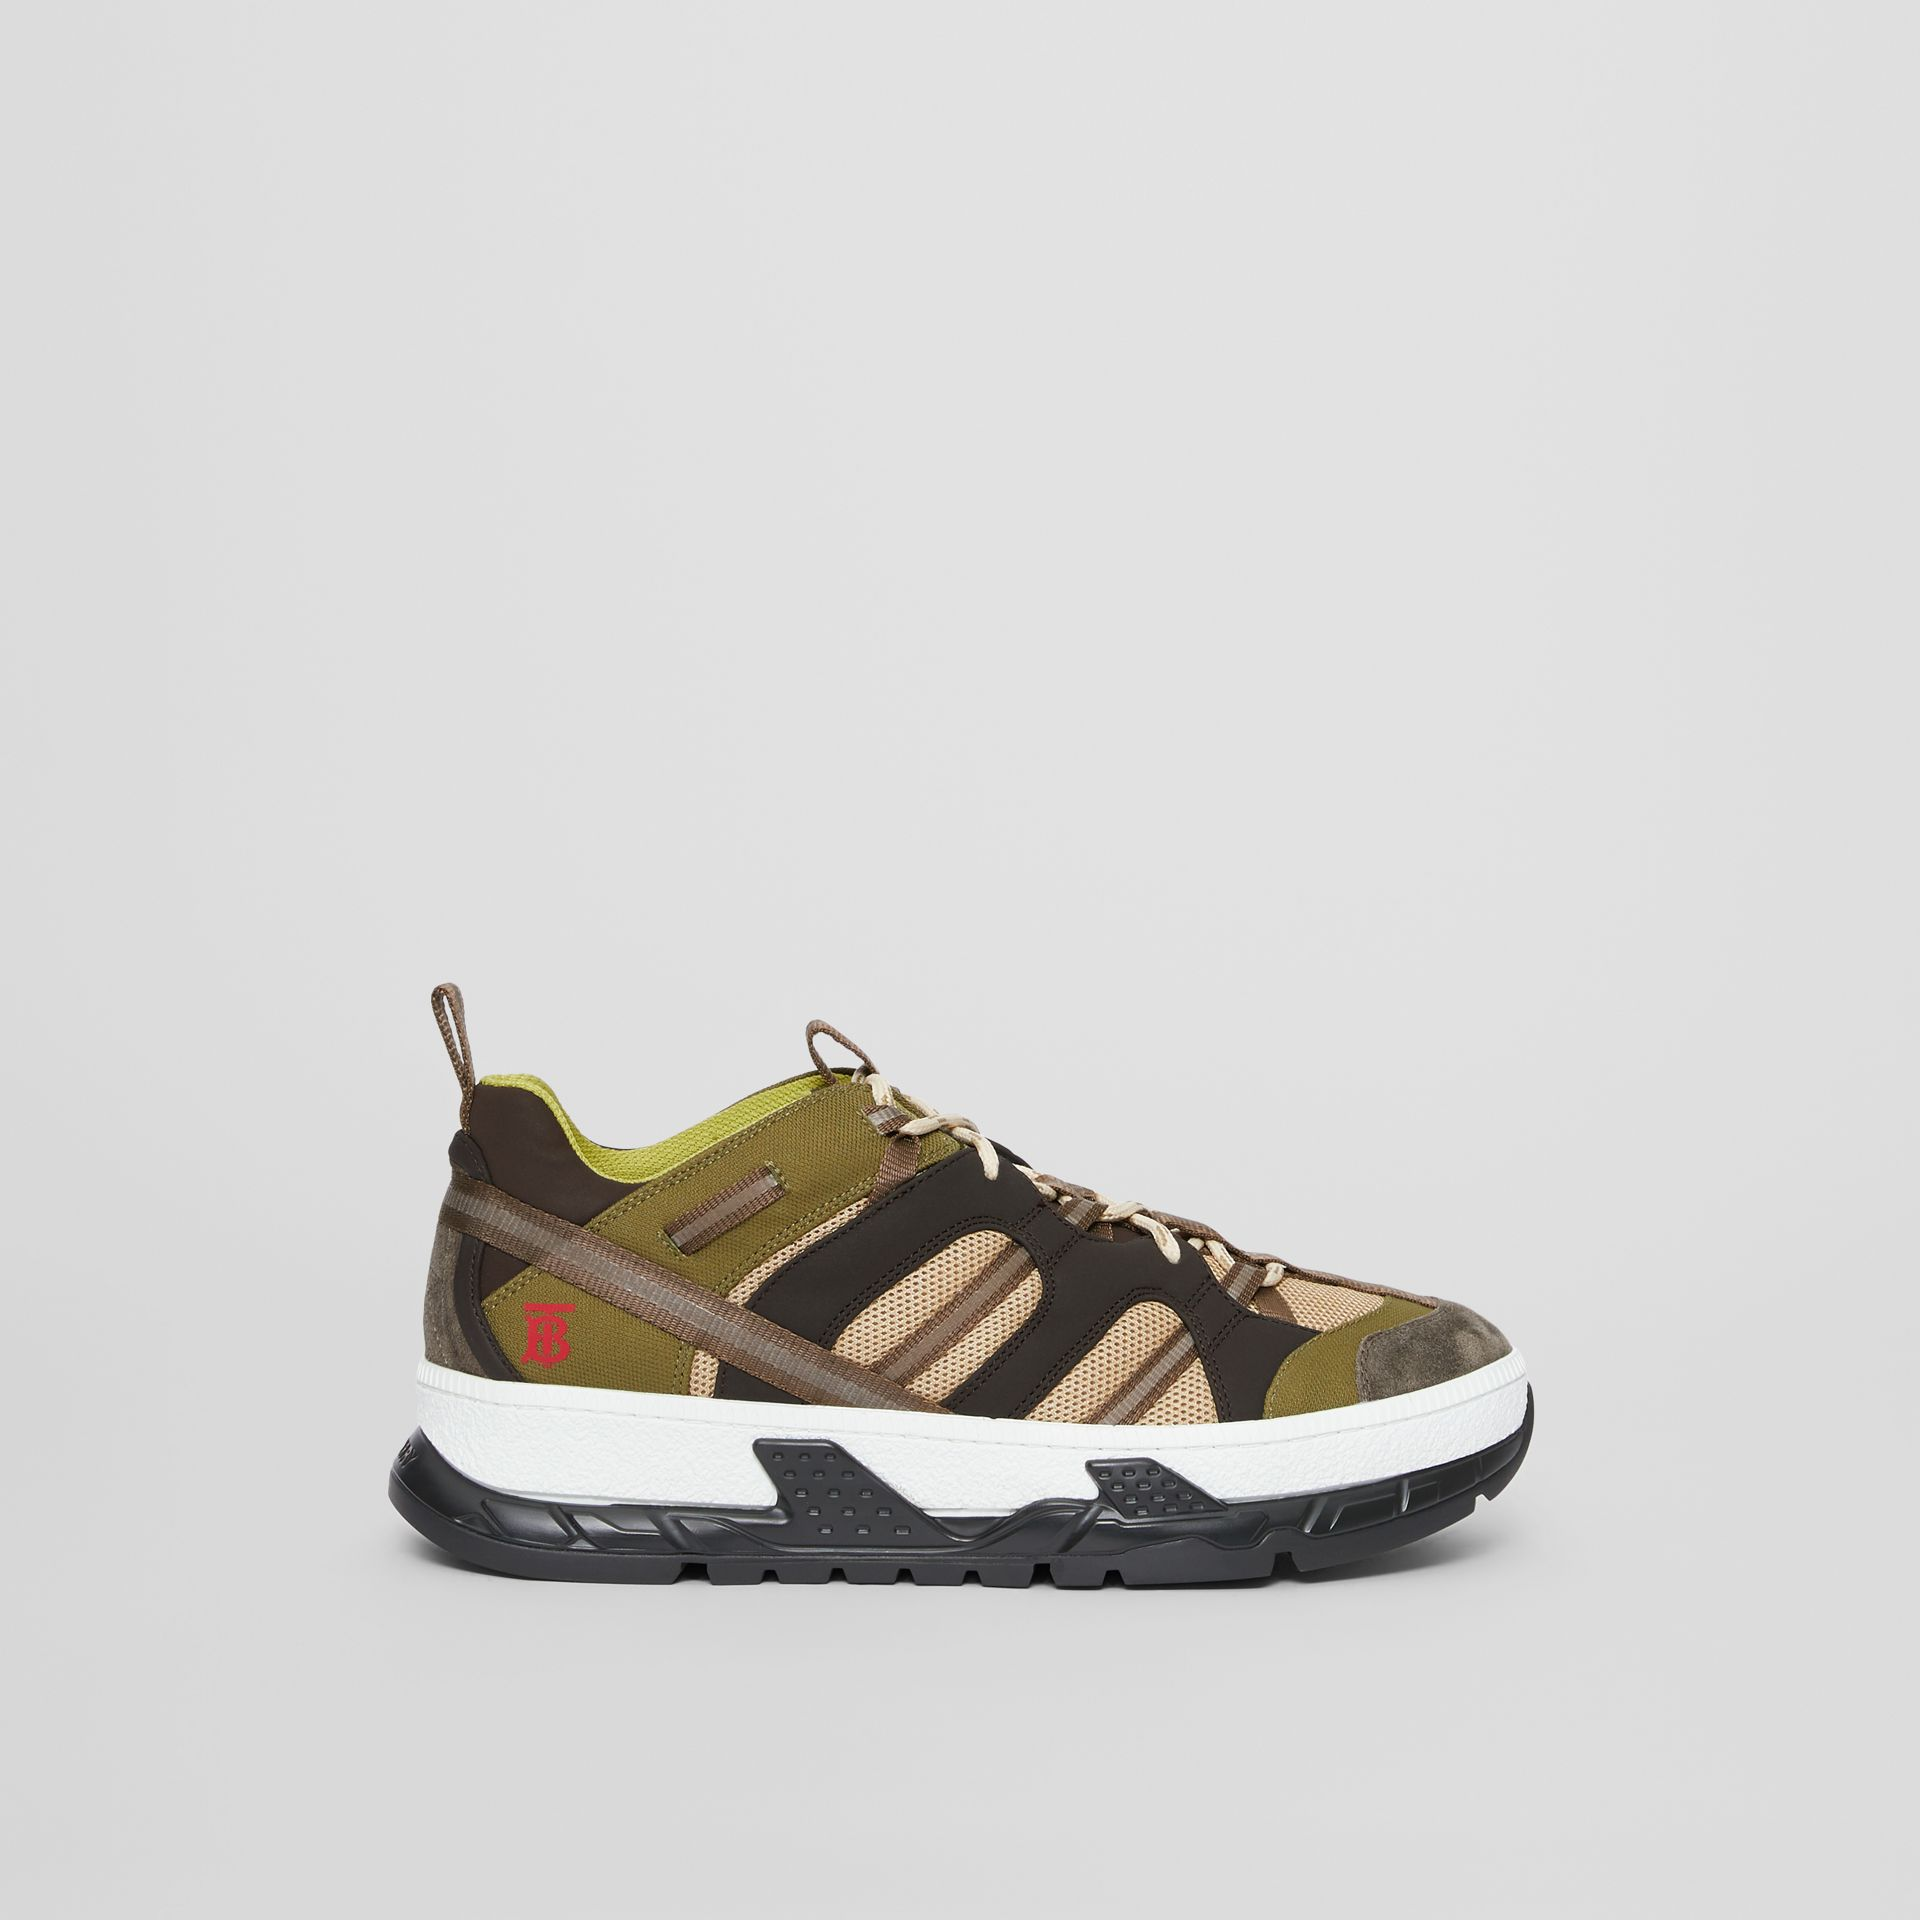 Mesh and Suede Union Sneakers in Khaki / Brown - Men | Burberry Hong Kong S.A.R - gallery image 4